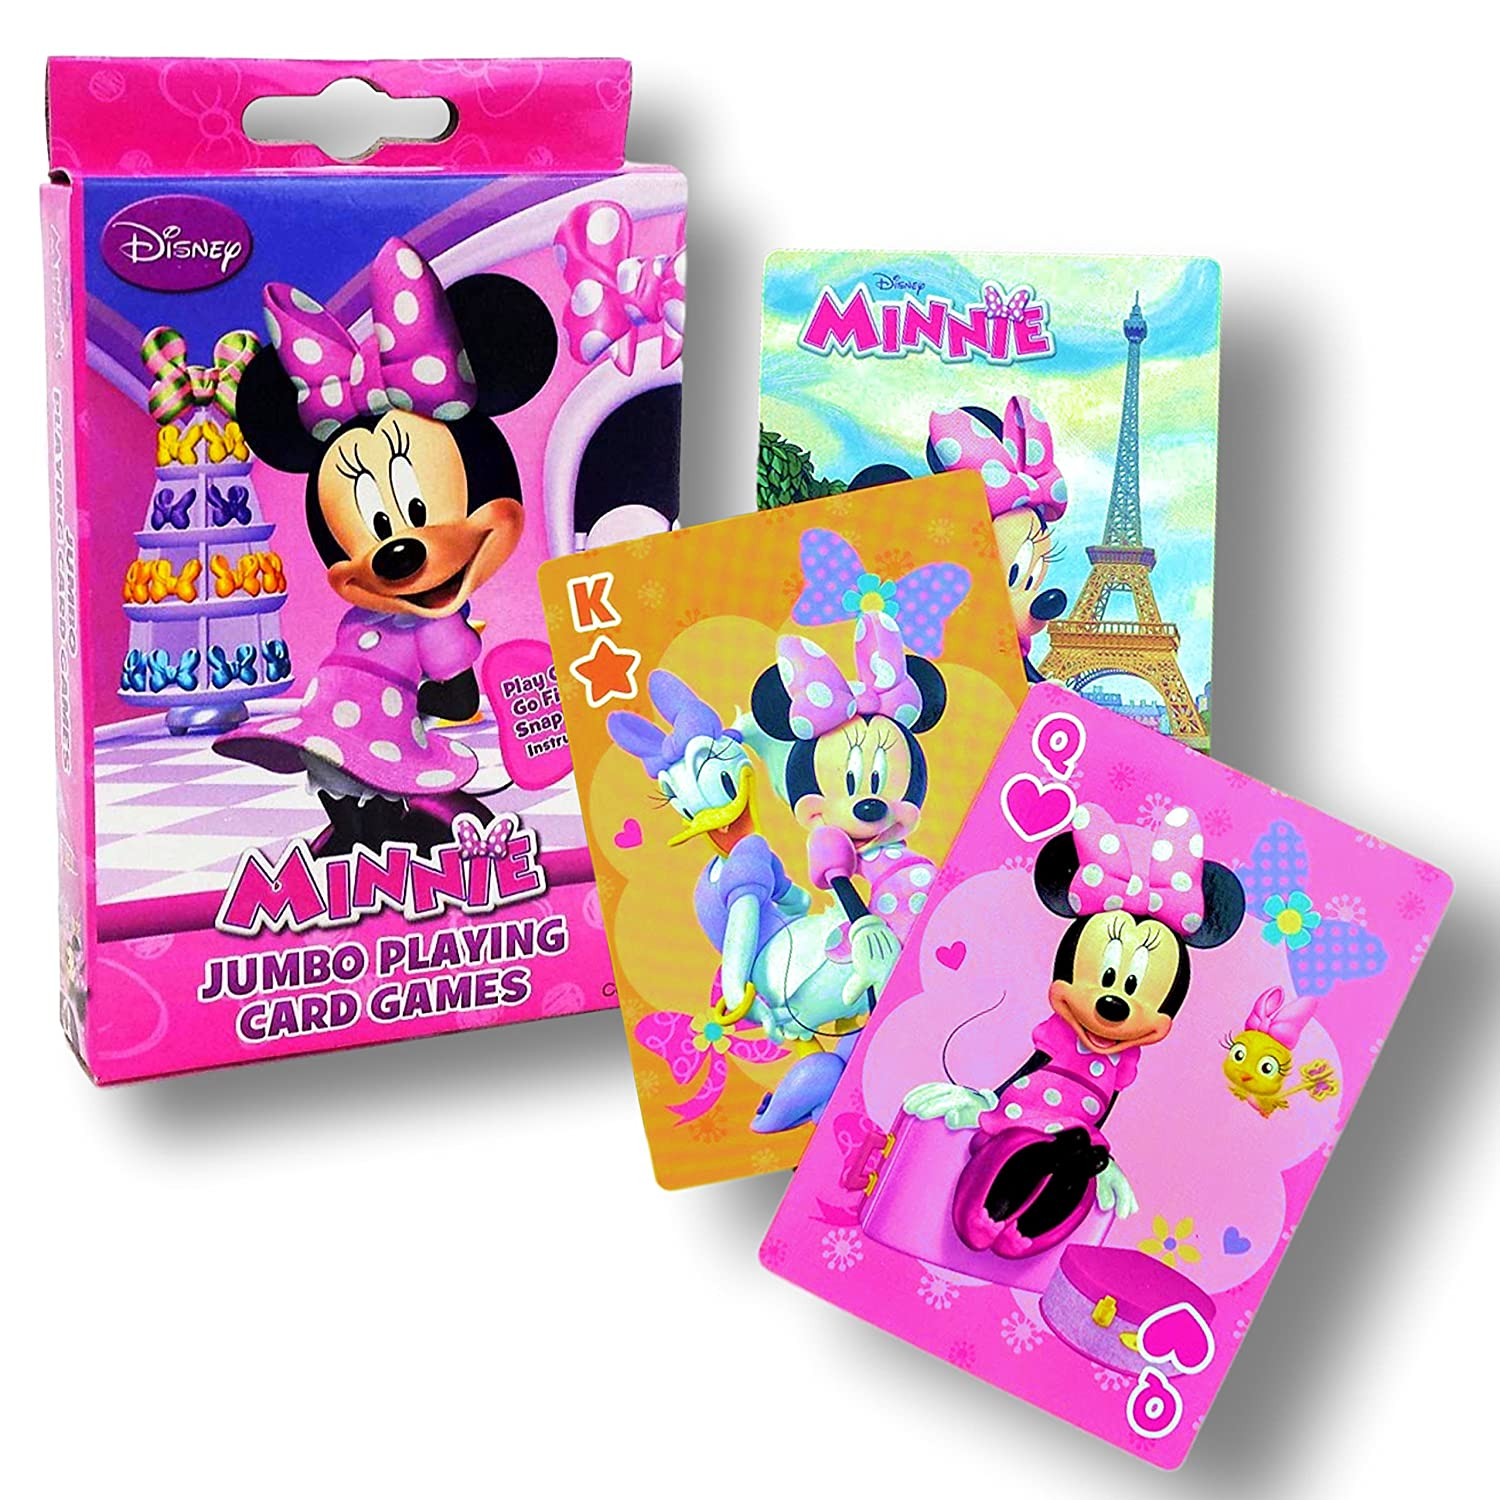 Amazon.com: Card Games for Kids (Minnie Mouse Jumbo Playing Cards ...